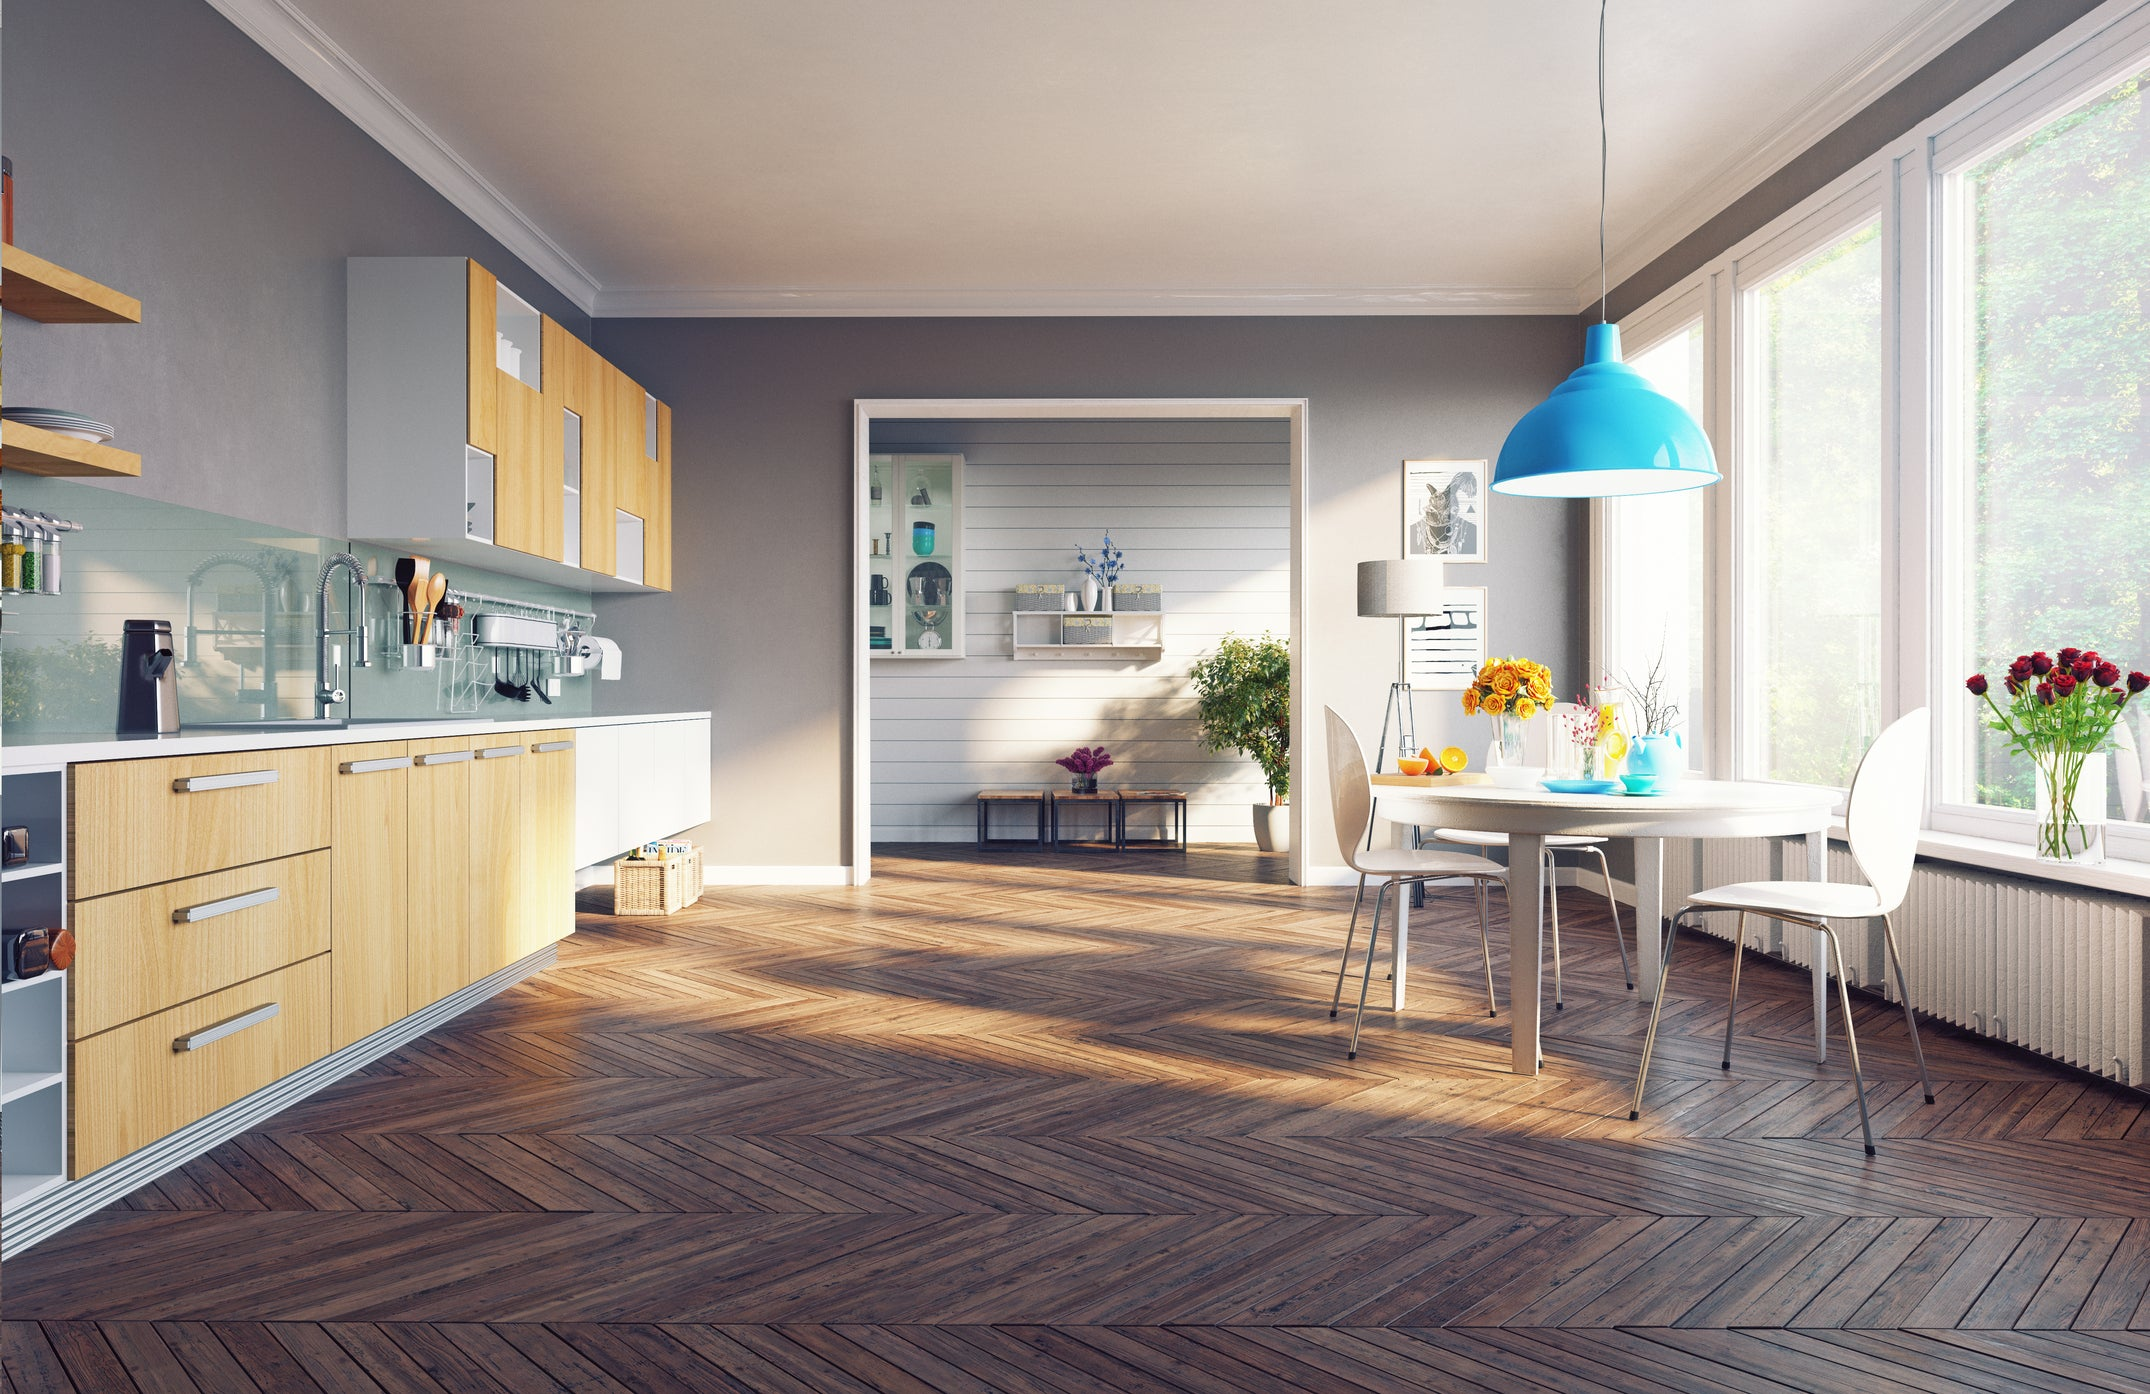 Spacious kitchen with grey walls and herringbone wooden flooring